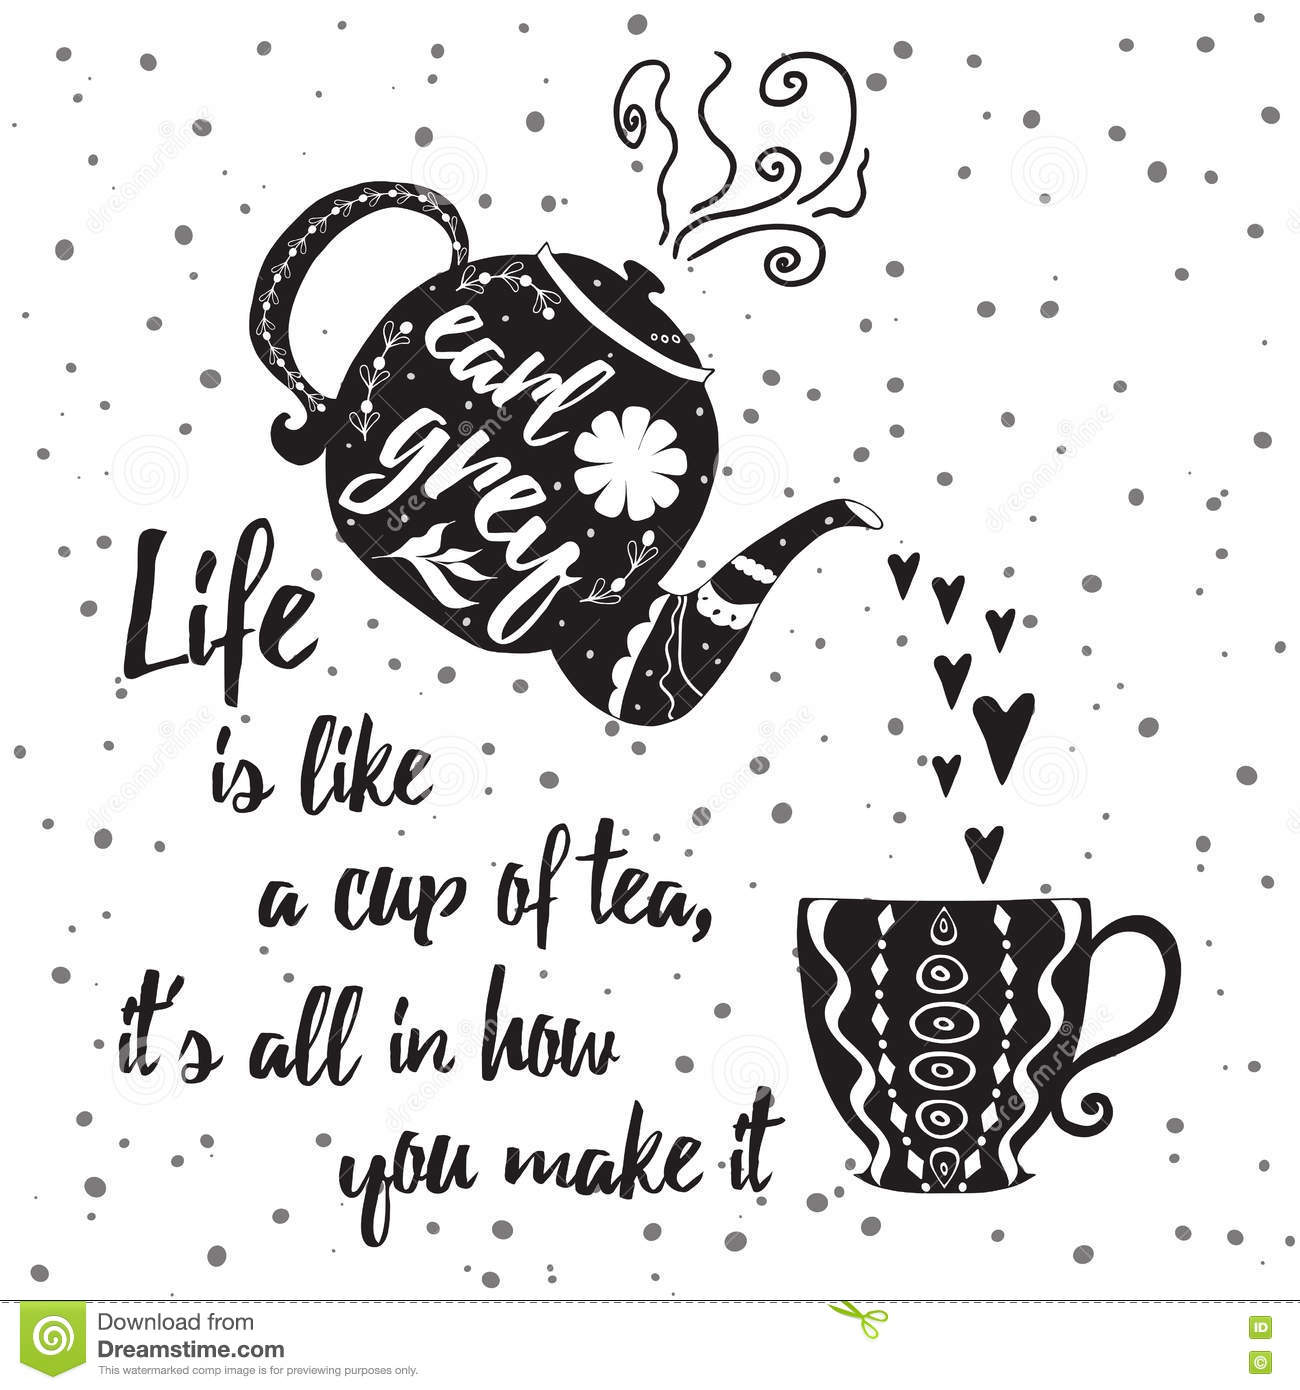 Positive Life Quotes Motivational Printable Card With Tea Cup, Teapot And Positive Life  Positive Life Quotes